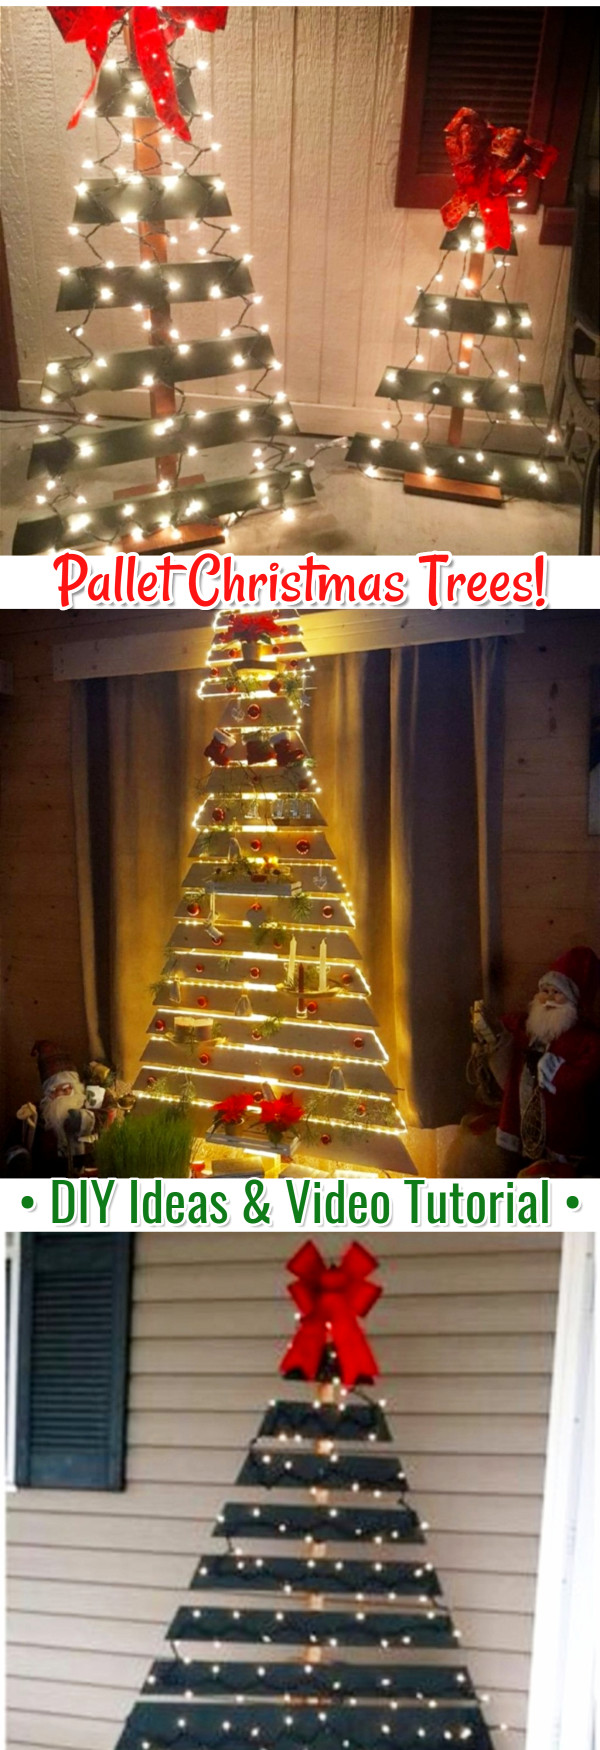 DIY Pallet Christmas Tree Ideas - We Tried It!  Make a Christmas tree from old pallets (tutorial video too)... painted ideas, with lights, decorated, indoors and outdoors ideas for front porches at Xmas.